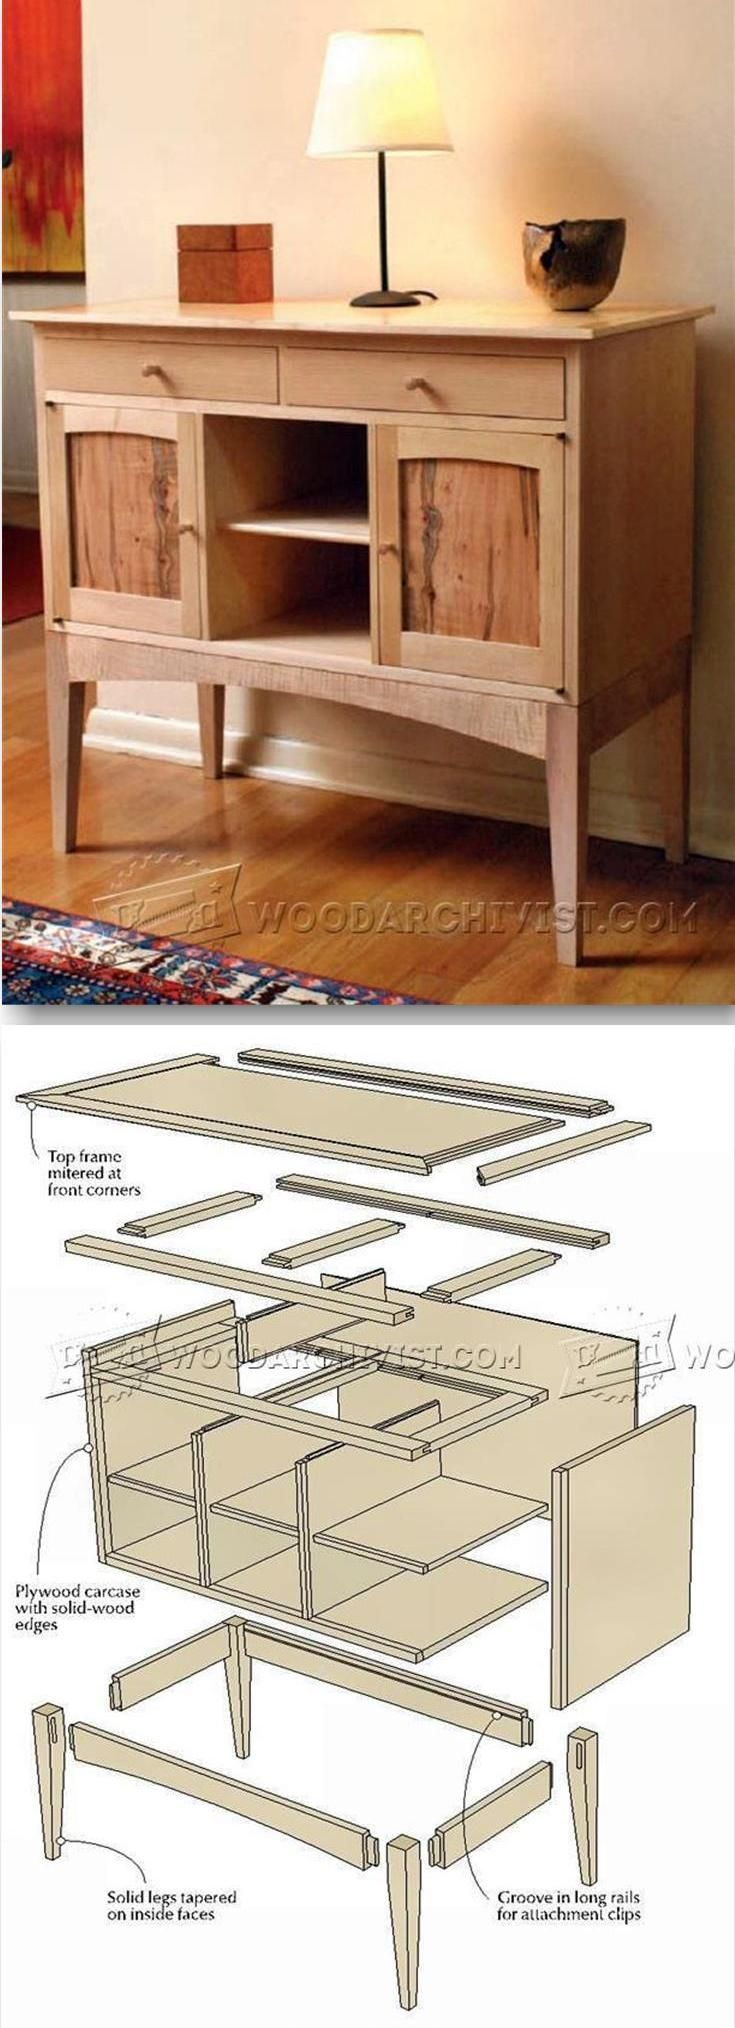 Build Sideboard - Furniture Plans and Projects